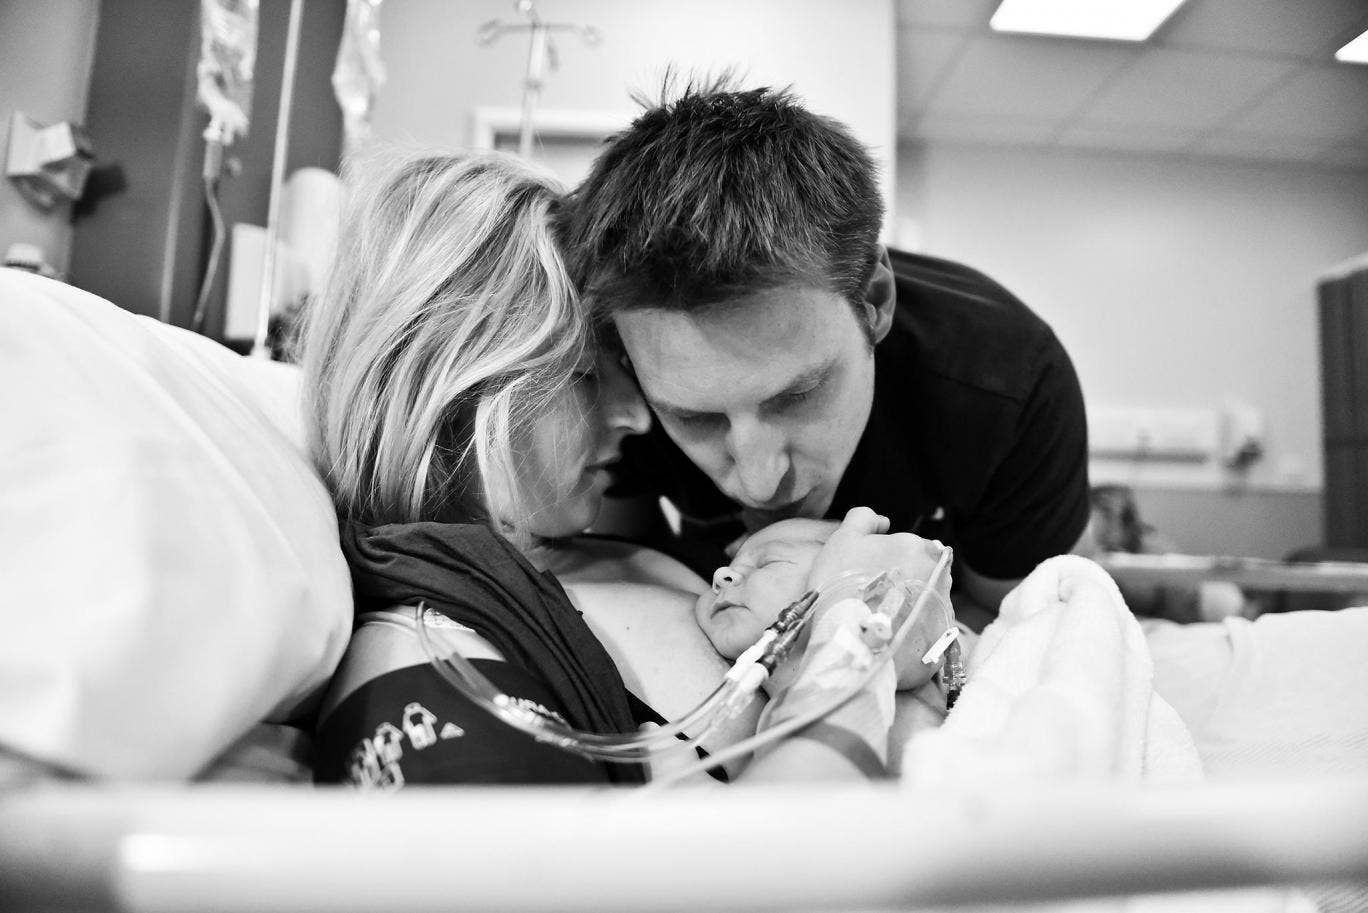 Husband driving, wife gives birth: extreme childbirth in the photo